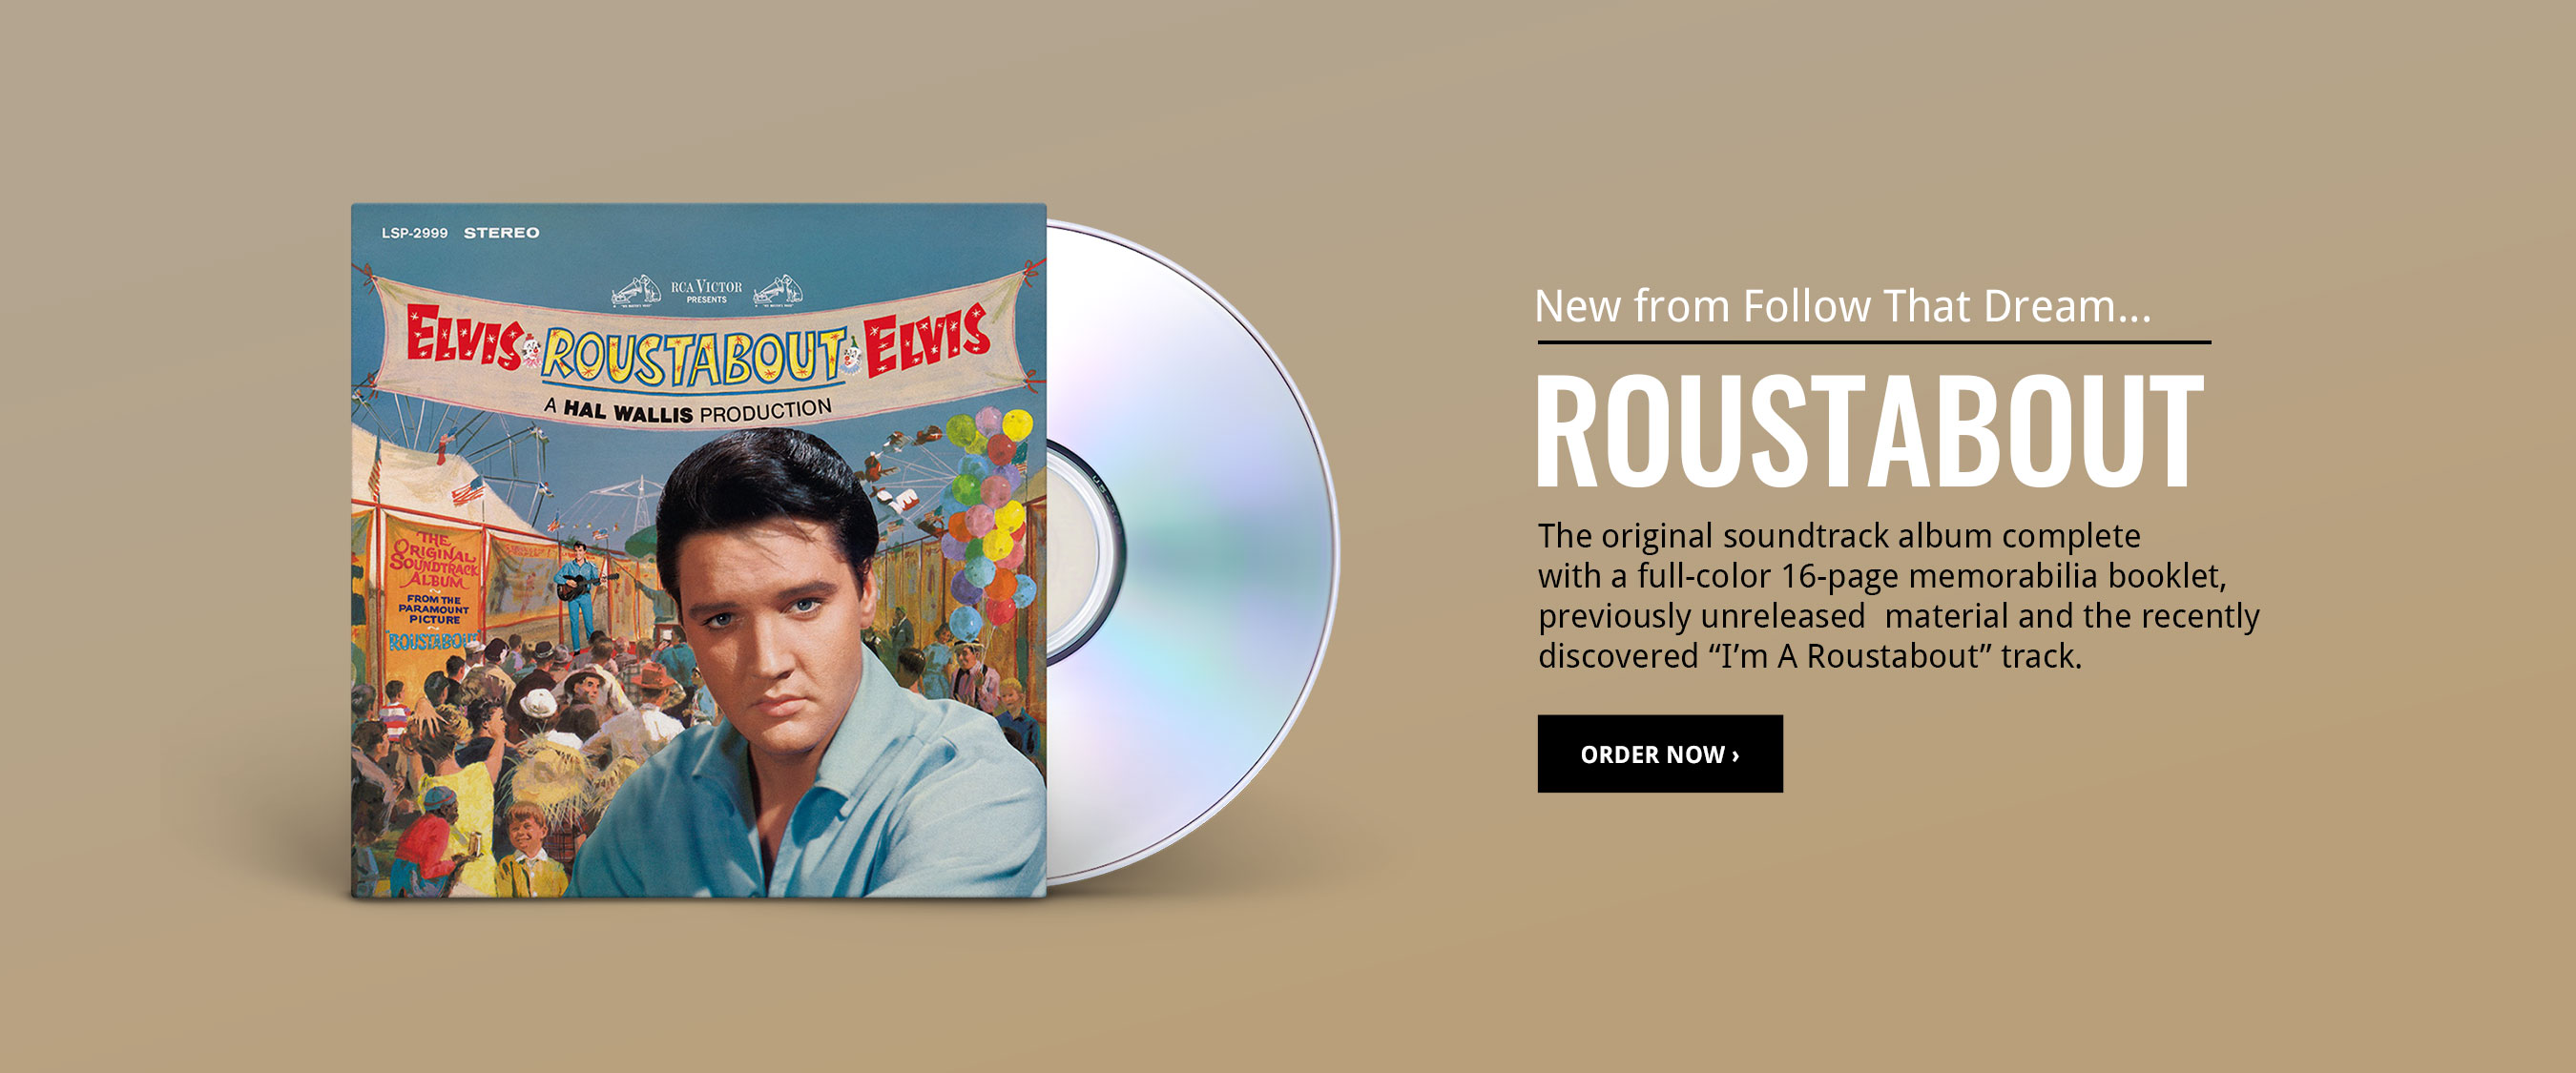 Order the Roustabout FTD CD!